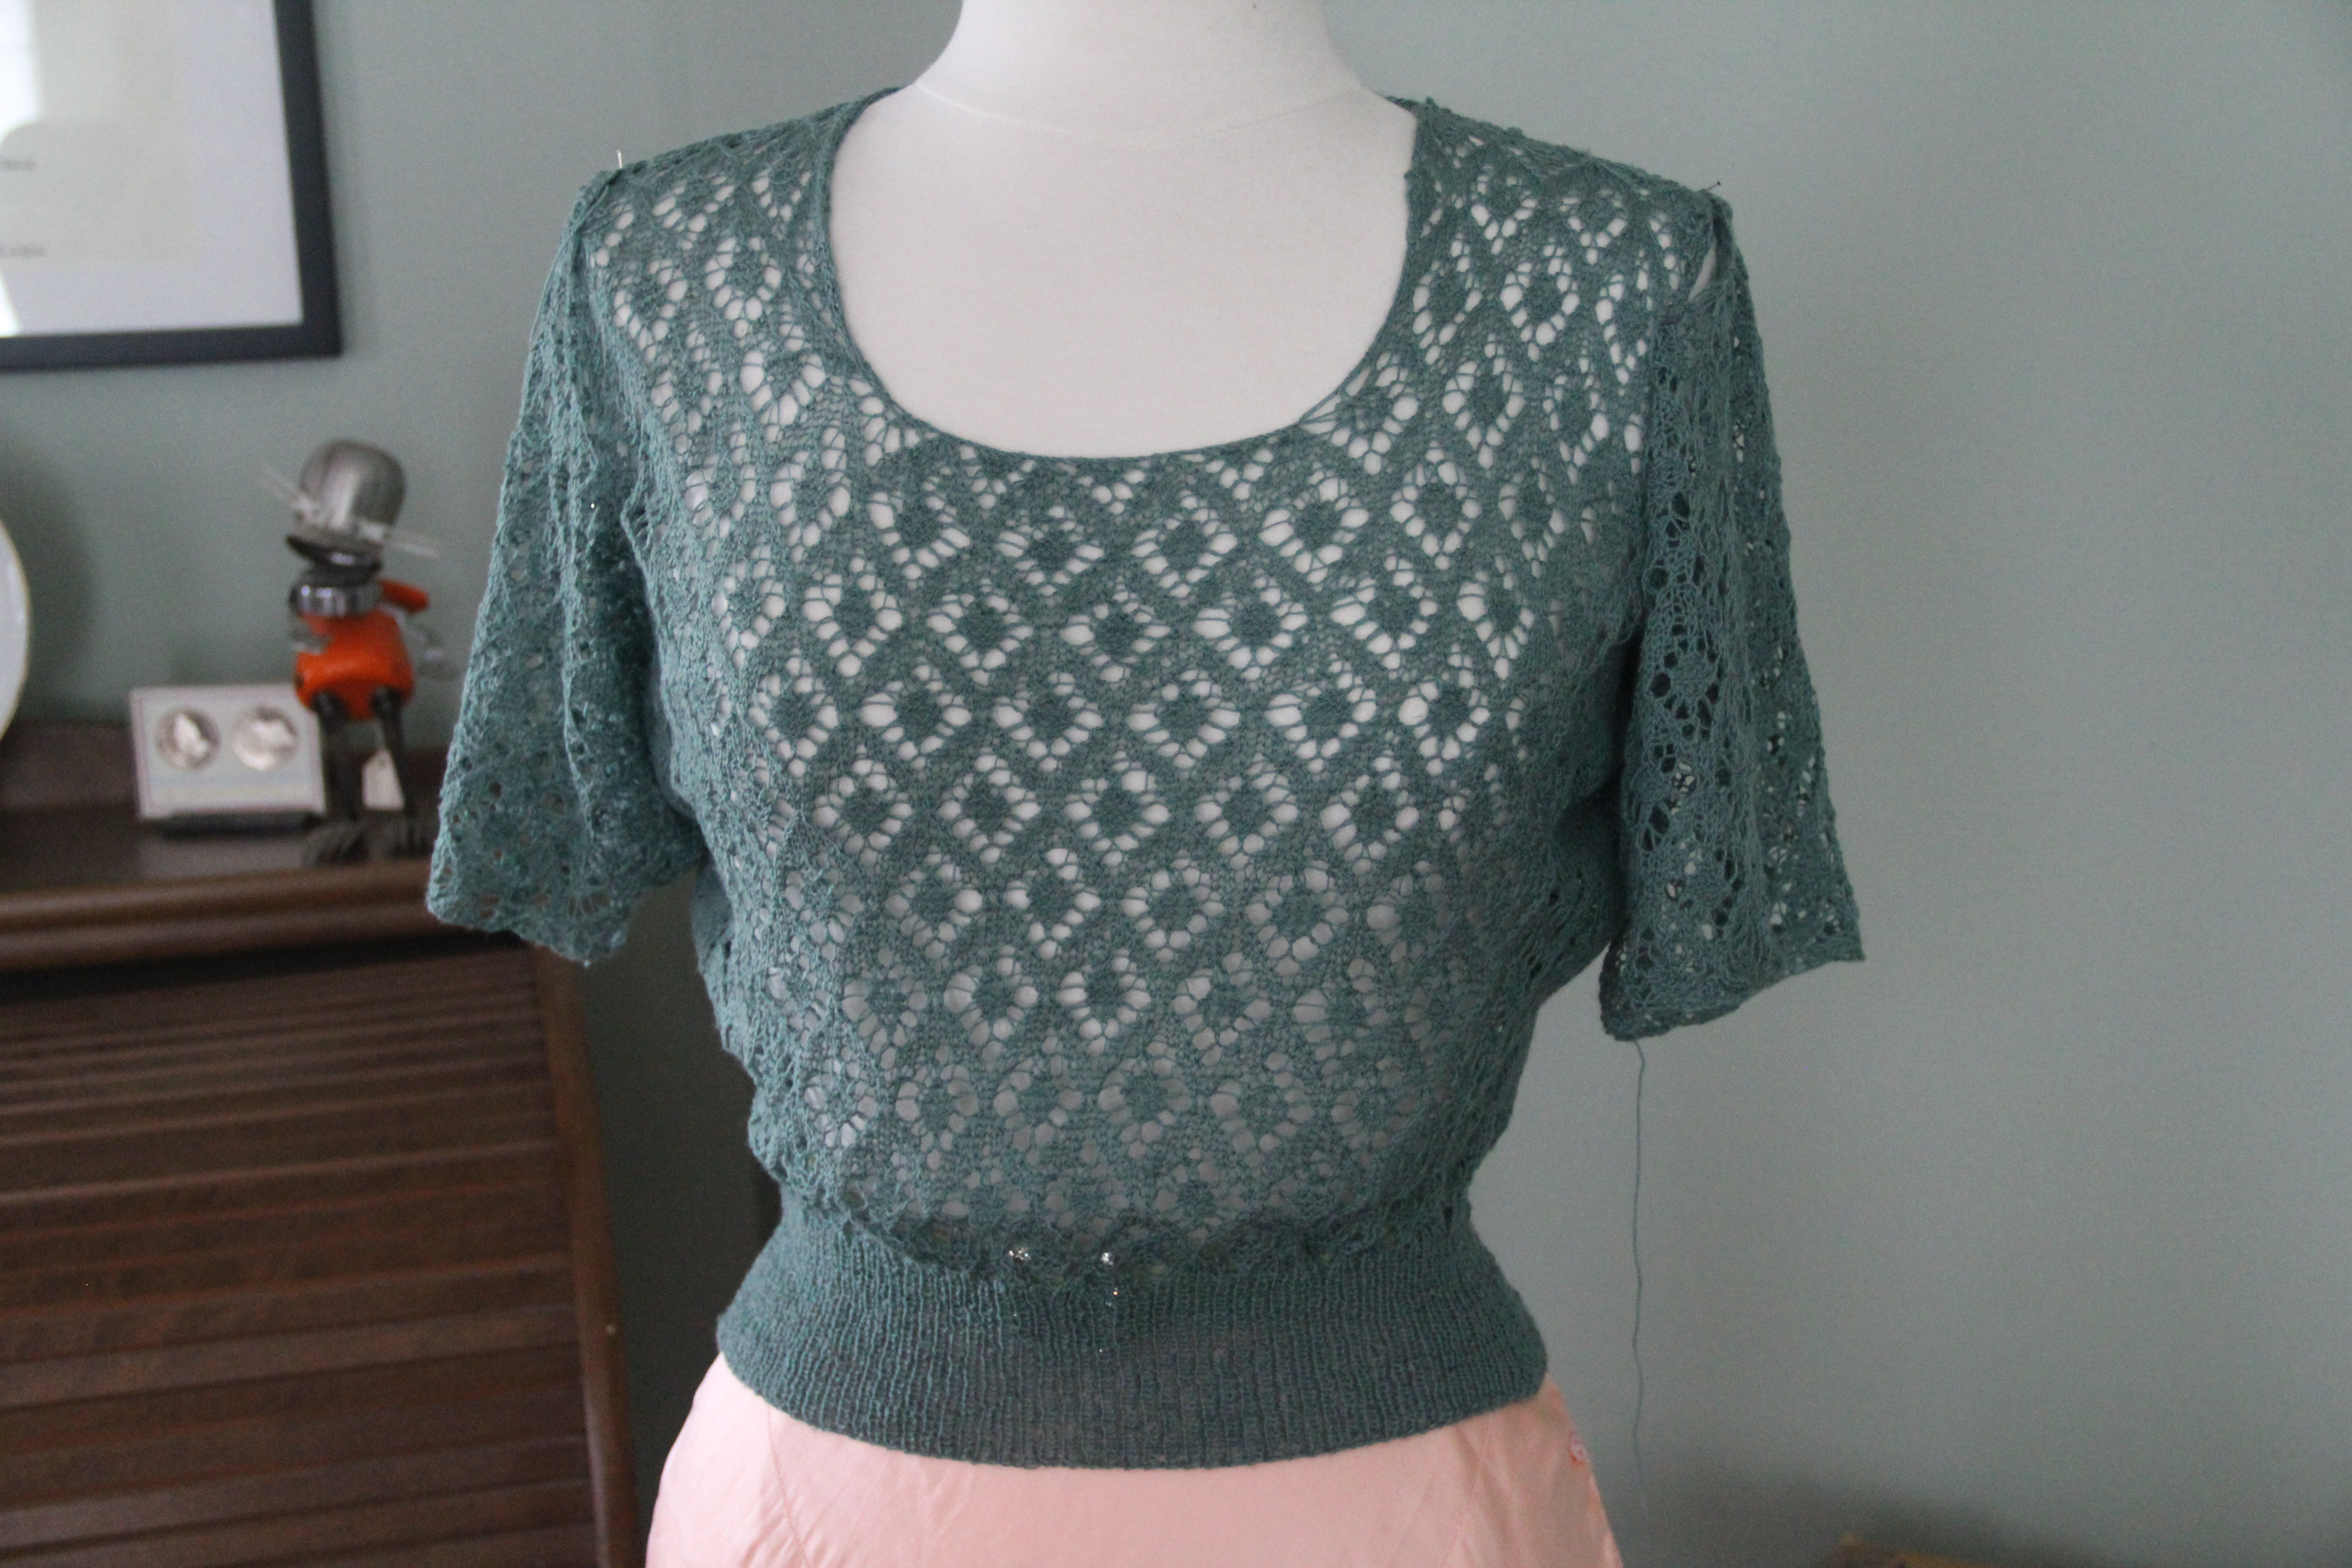 1951 knitted lace sweater